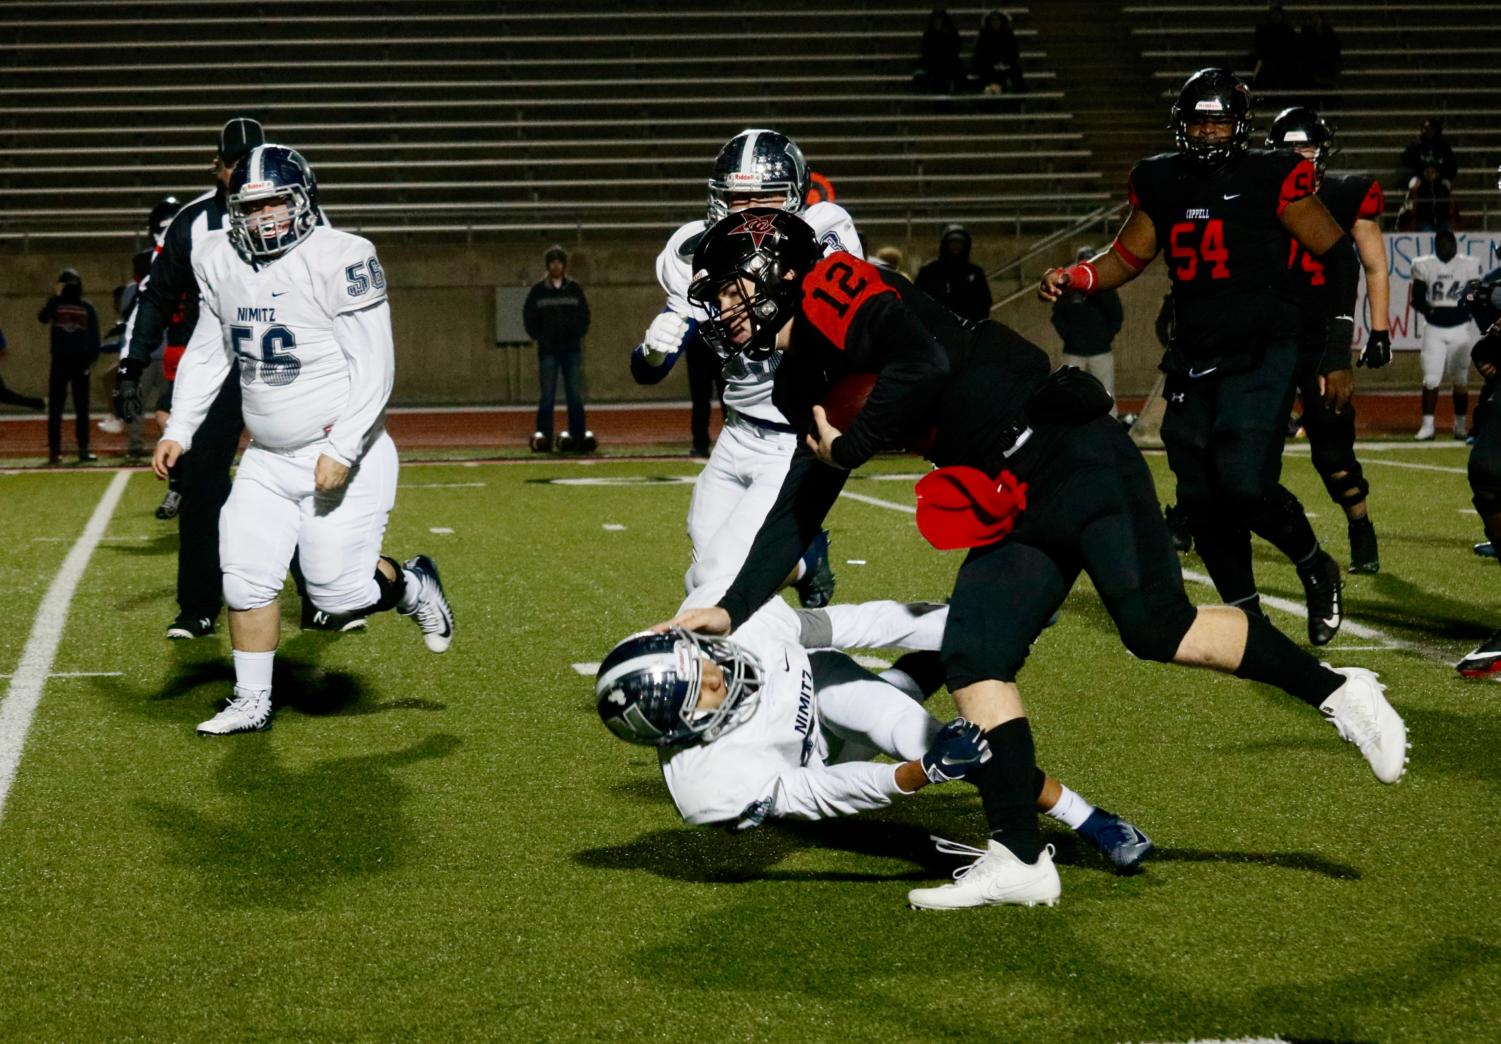 Coppell senior quarterback Kevin Shuman scores the last touchdown of the season with 8:42 remaining in the fourth quarter. Coppell defeated Irving Nimitz, 49-13, in the season finale on Friday night at Buddy Echols Field.